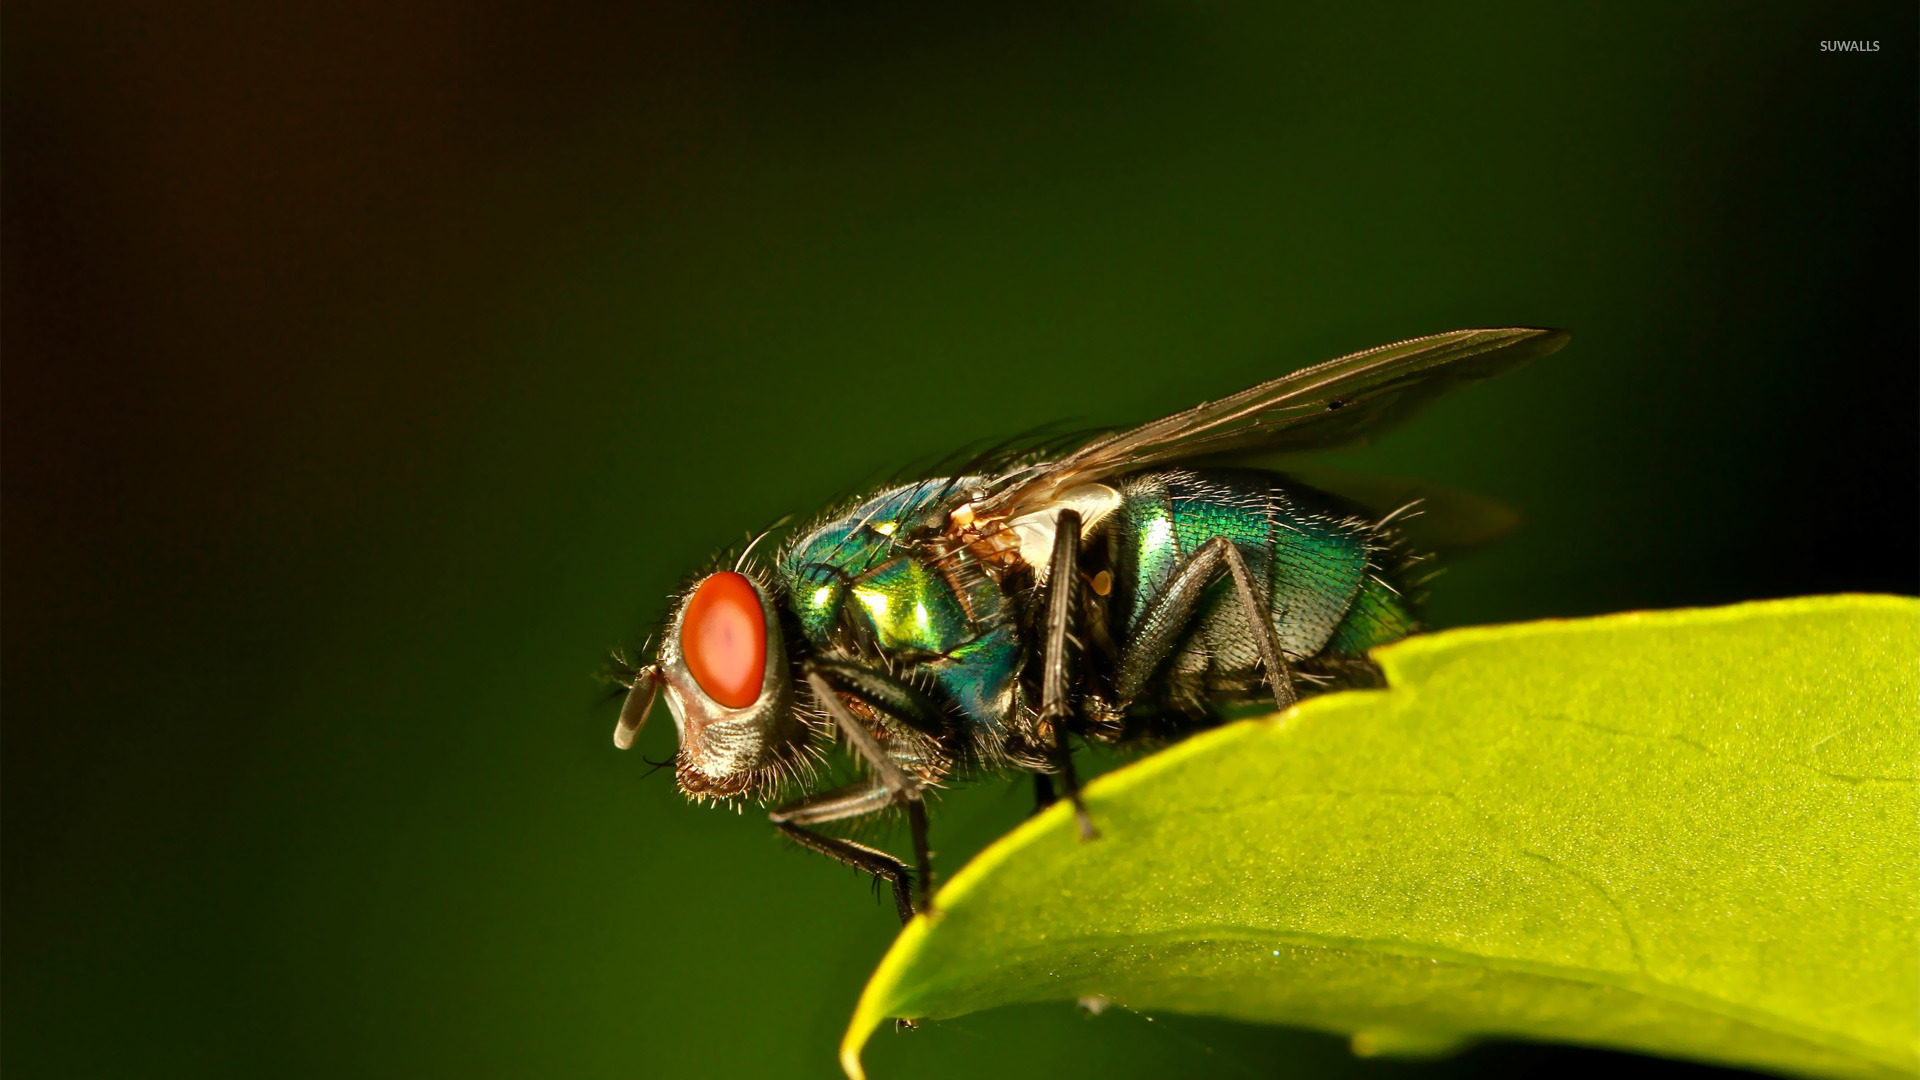 Common green bottle fly wallpapers